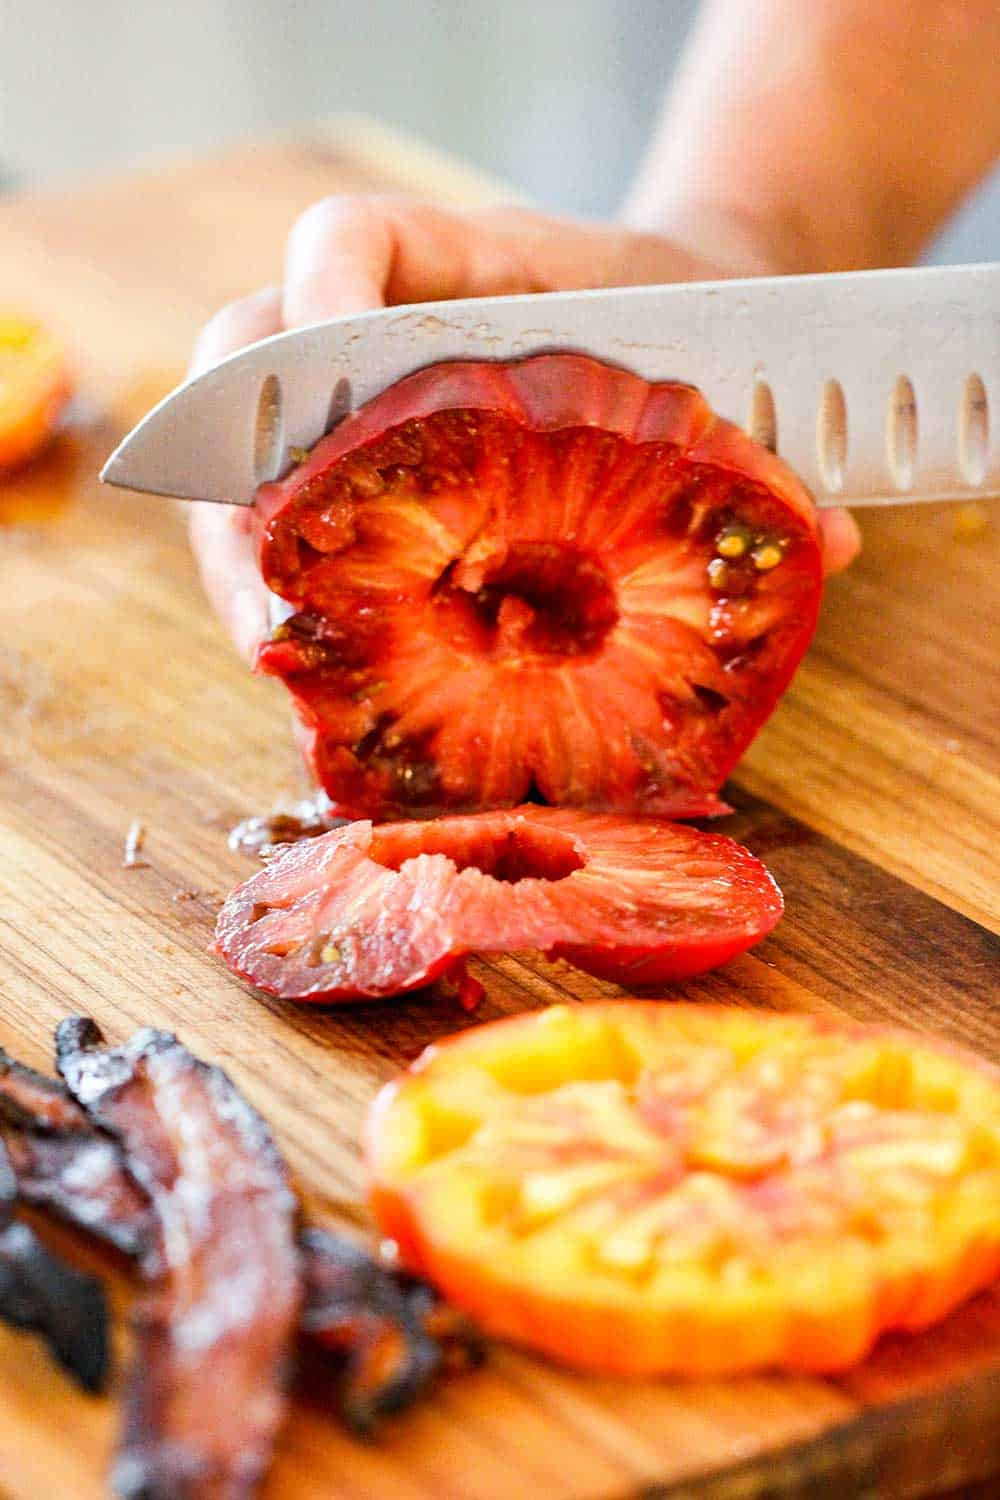 A knife slicing into a red heirloom tomato for classic BLT with garlic basil aioli